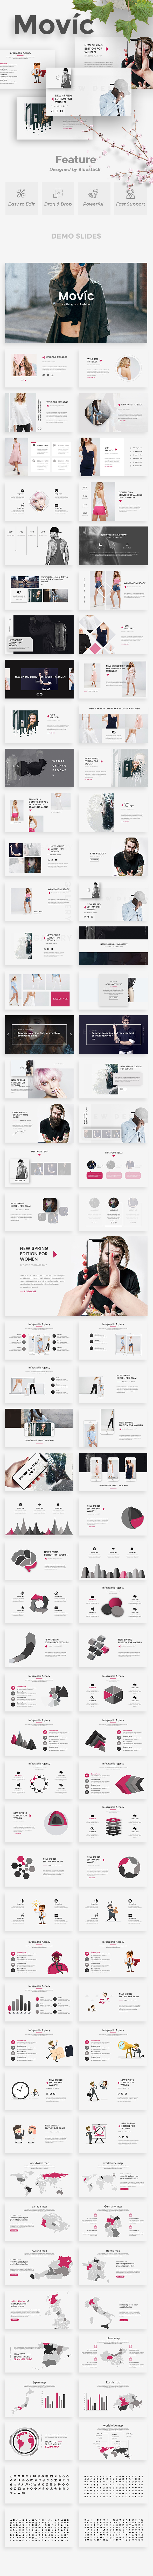 Movic - Clothing and Fashion Google Slide Template - Google Slides Presentation Templates